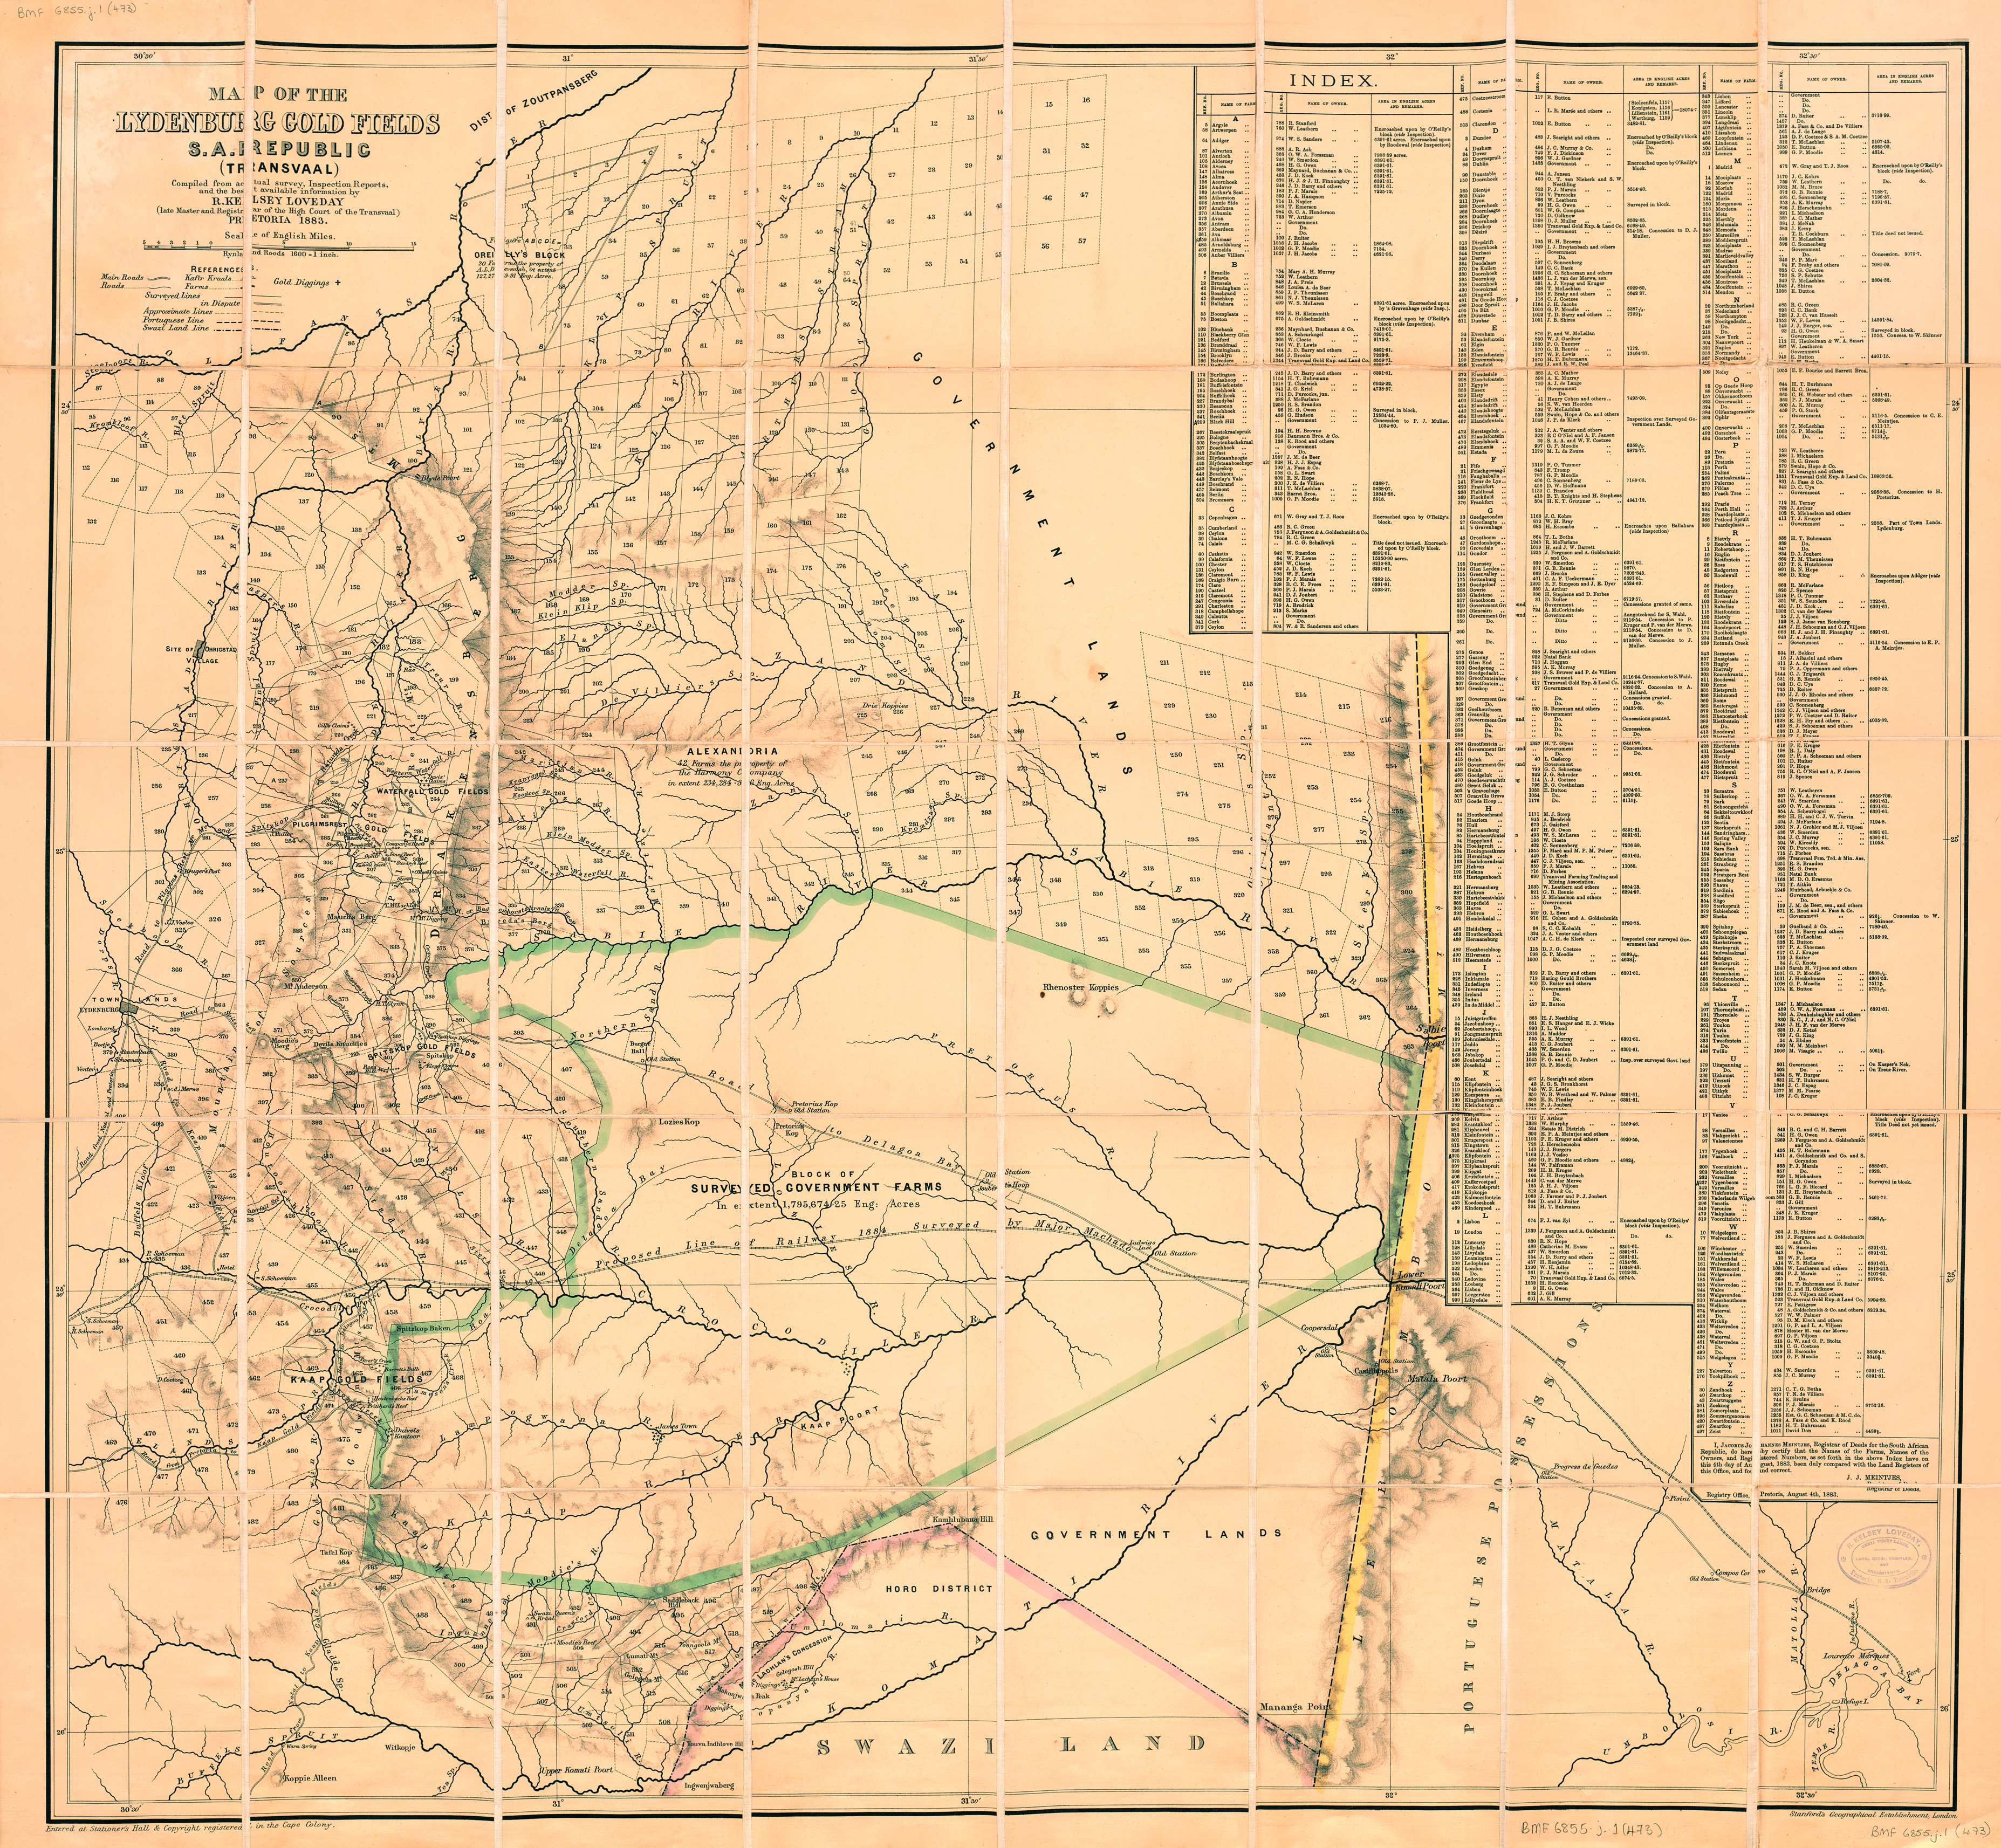 Map of the Lydenburg gold fields, S.A. Republic (Transvaal) | UCT